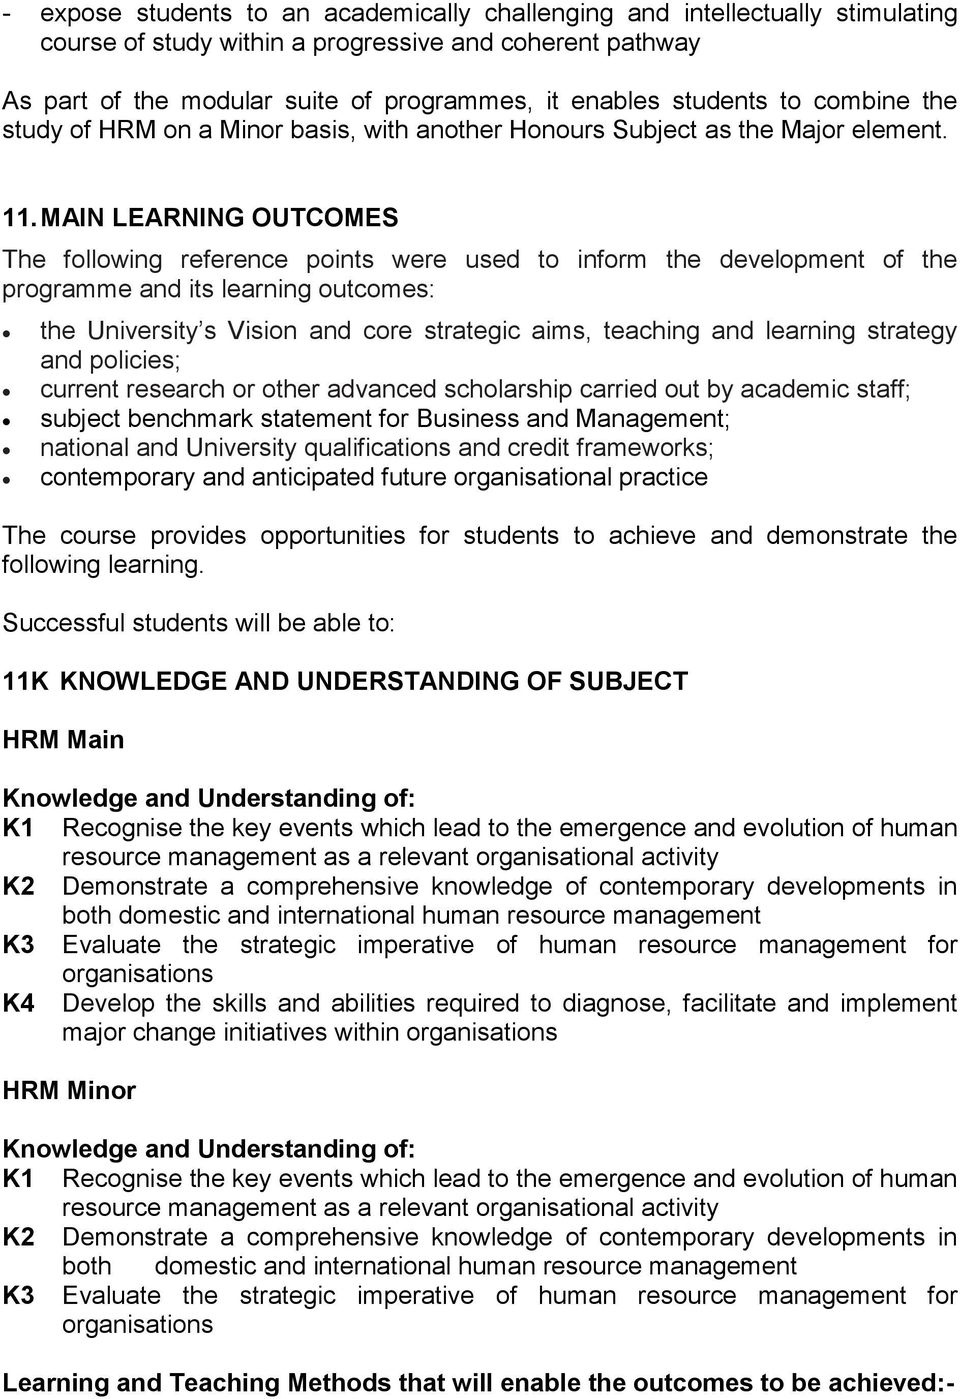 MAIN LEARNING OUTCOMES The following reference points were used to inform the development of the programme and its learning outcomes: the University s Vision and core strategic aims, teaching and